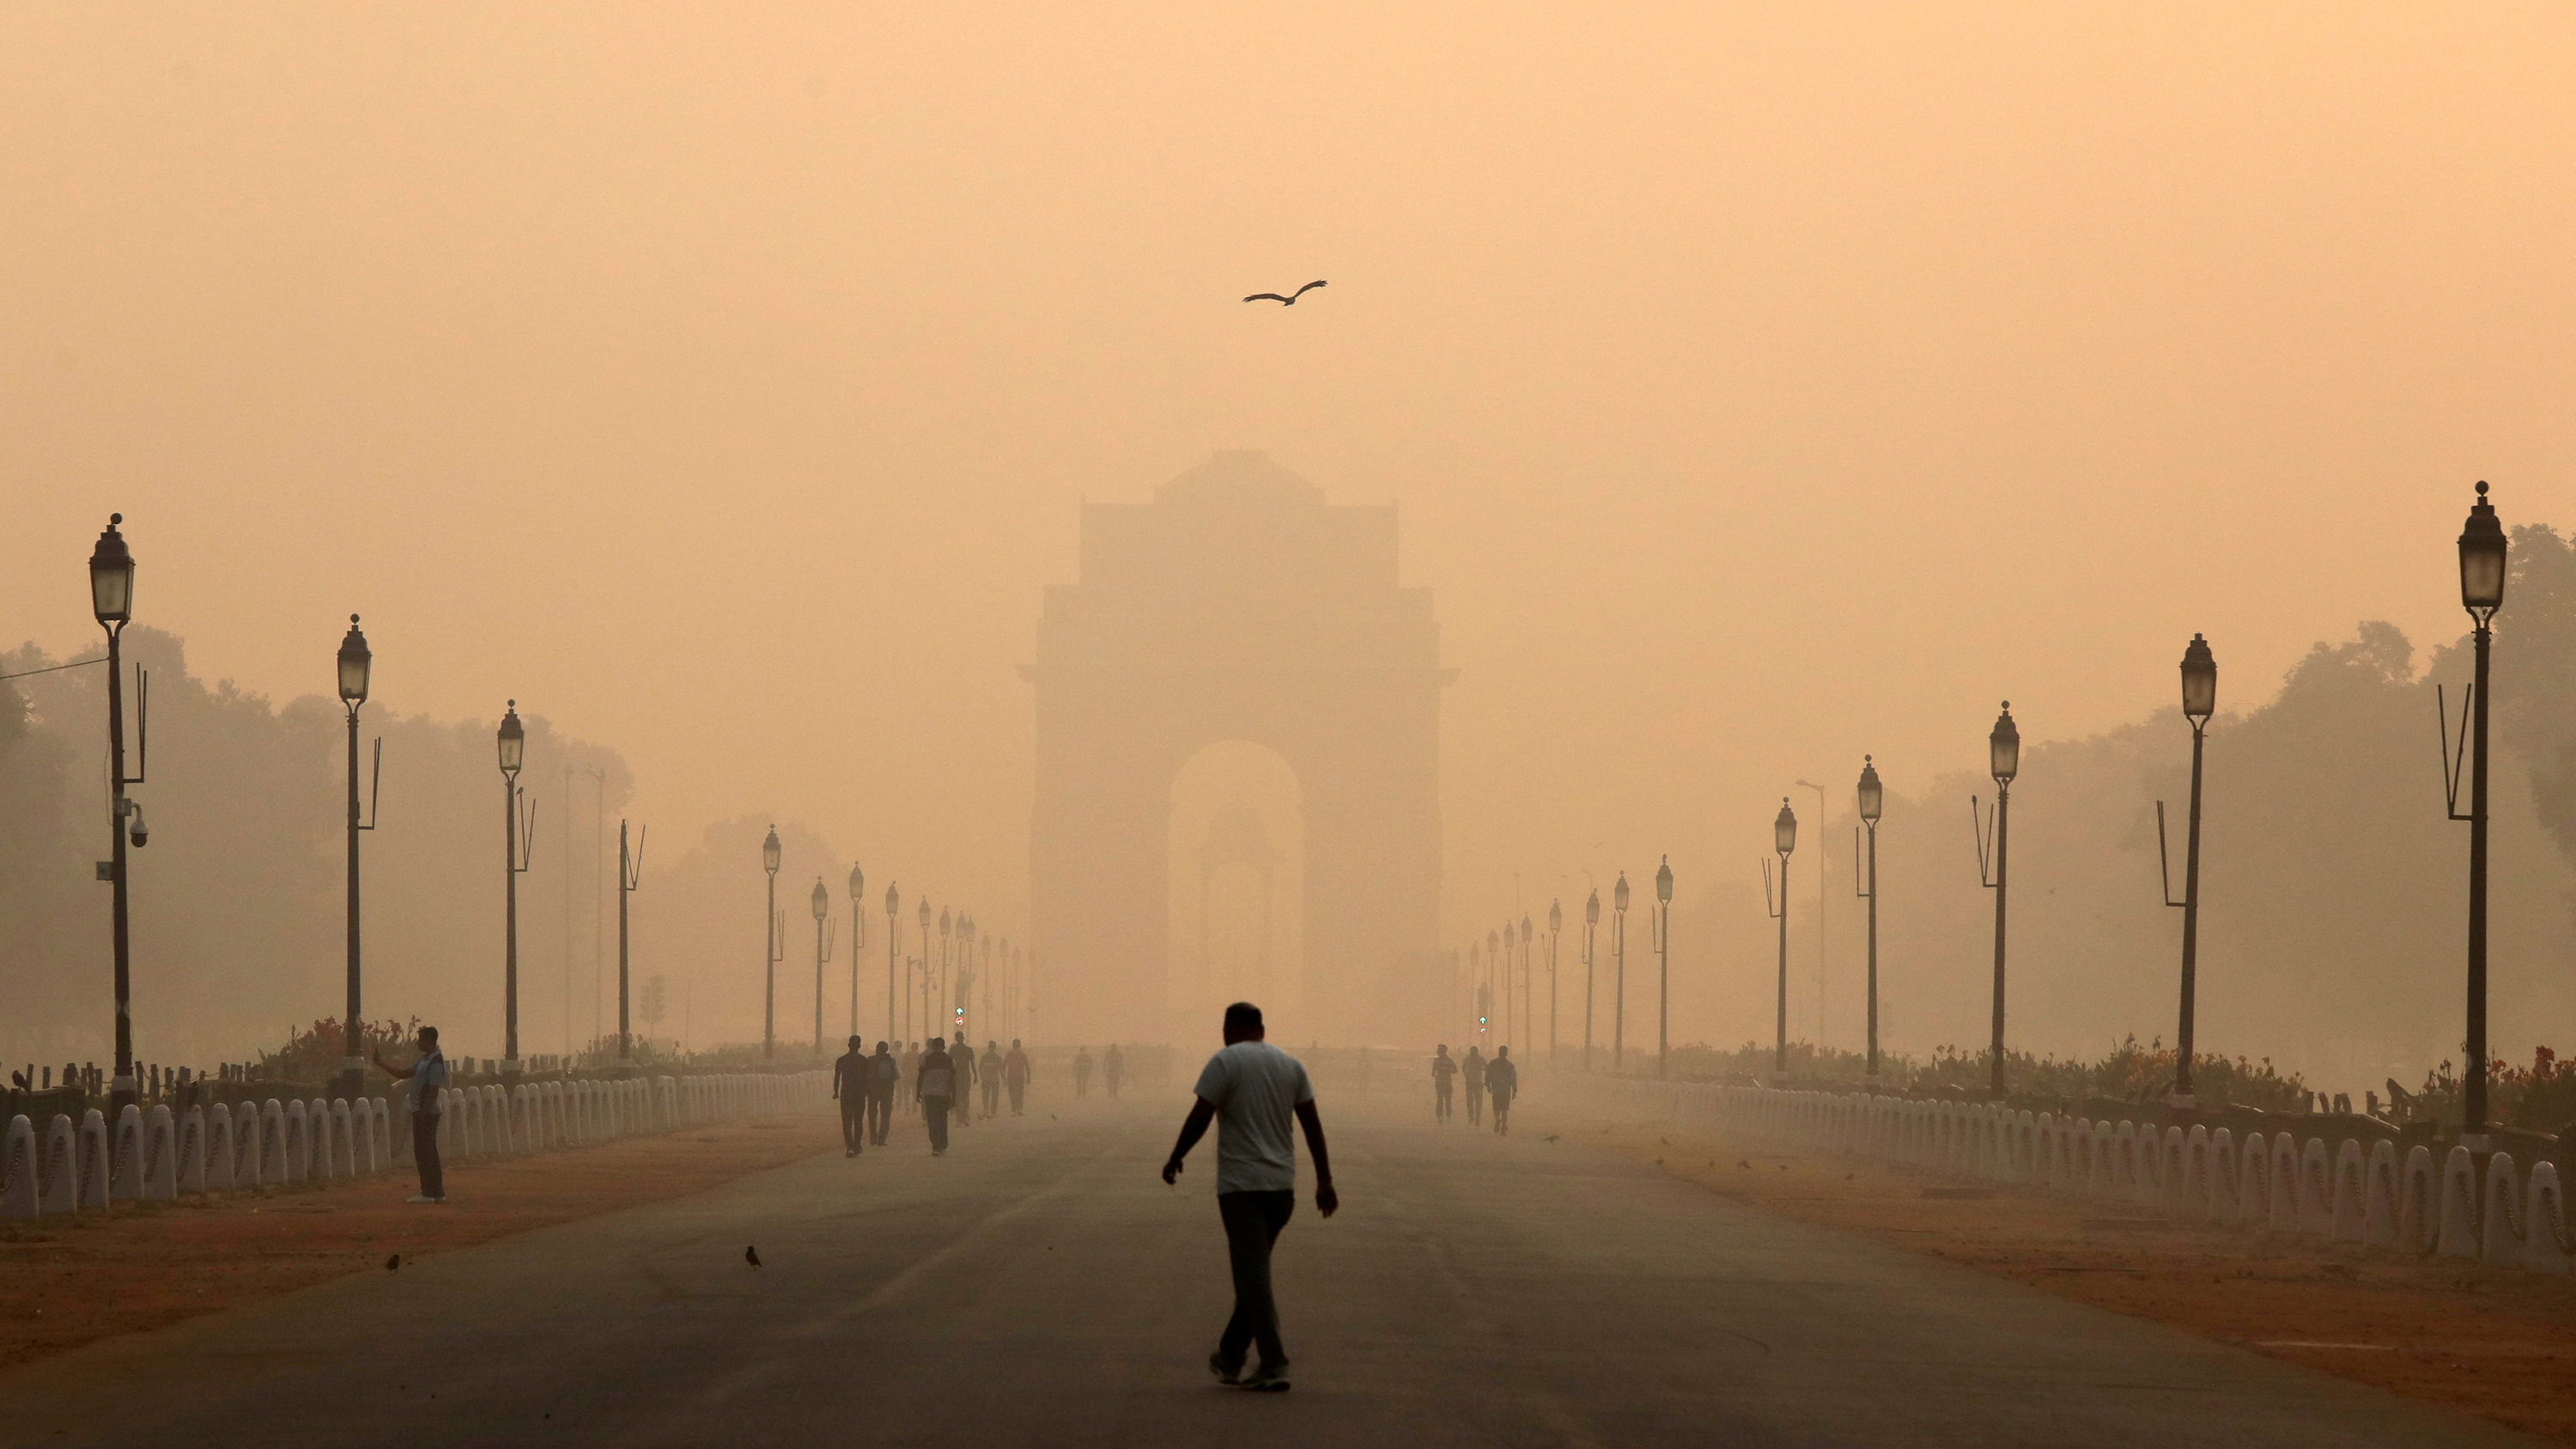 Photo shows a man in the distance and a grand architectural structure in the far distance, which is hard to see through the smog.